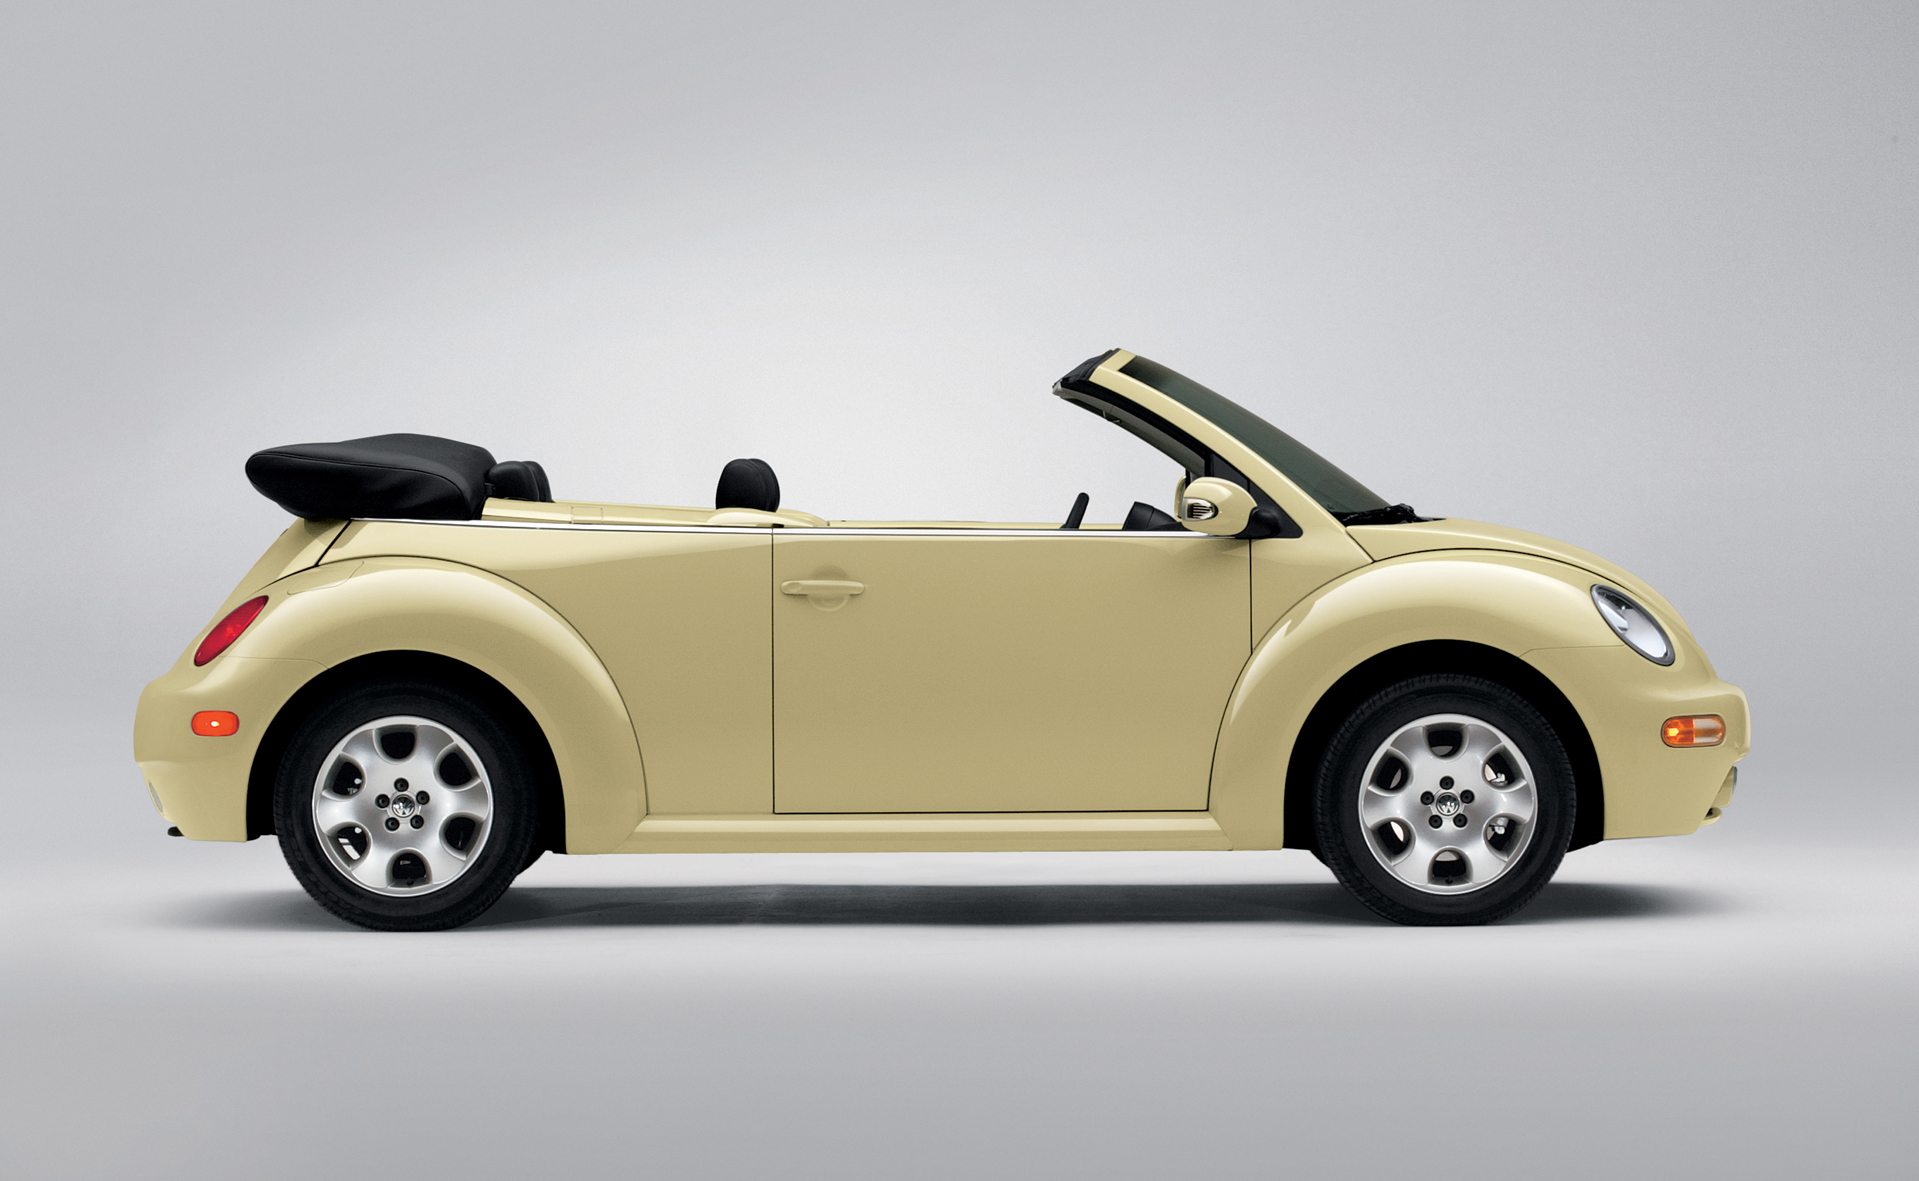 volkswagen new beetle cabriolet photos reviews news specs buy car. Black Bedroom Furniture Sets. Home Design Ideas